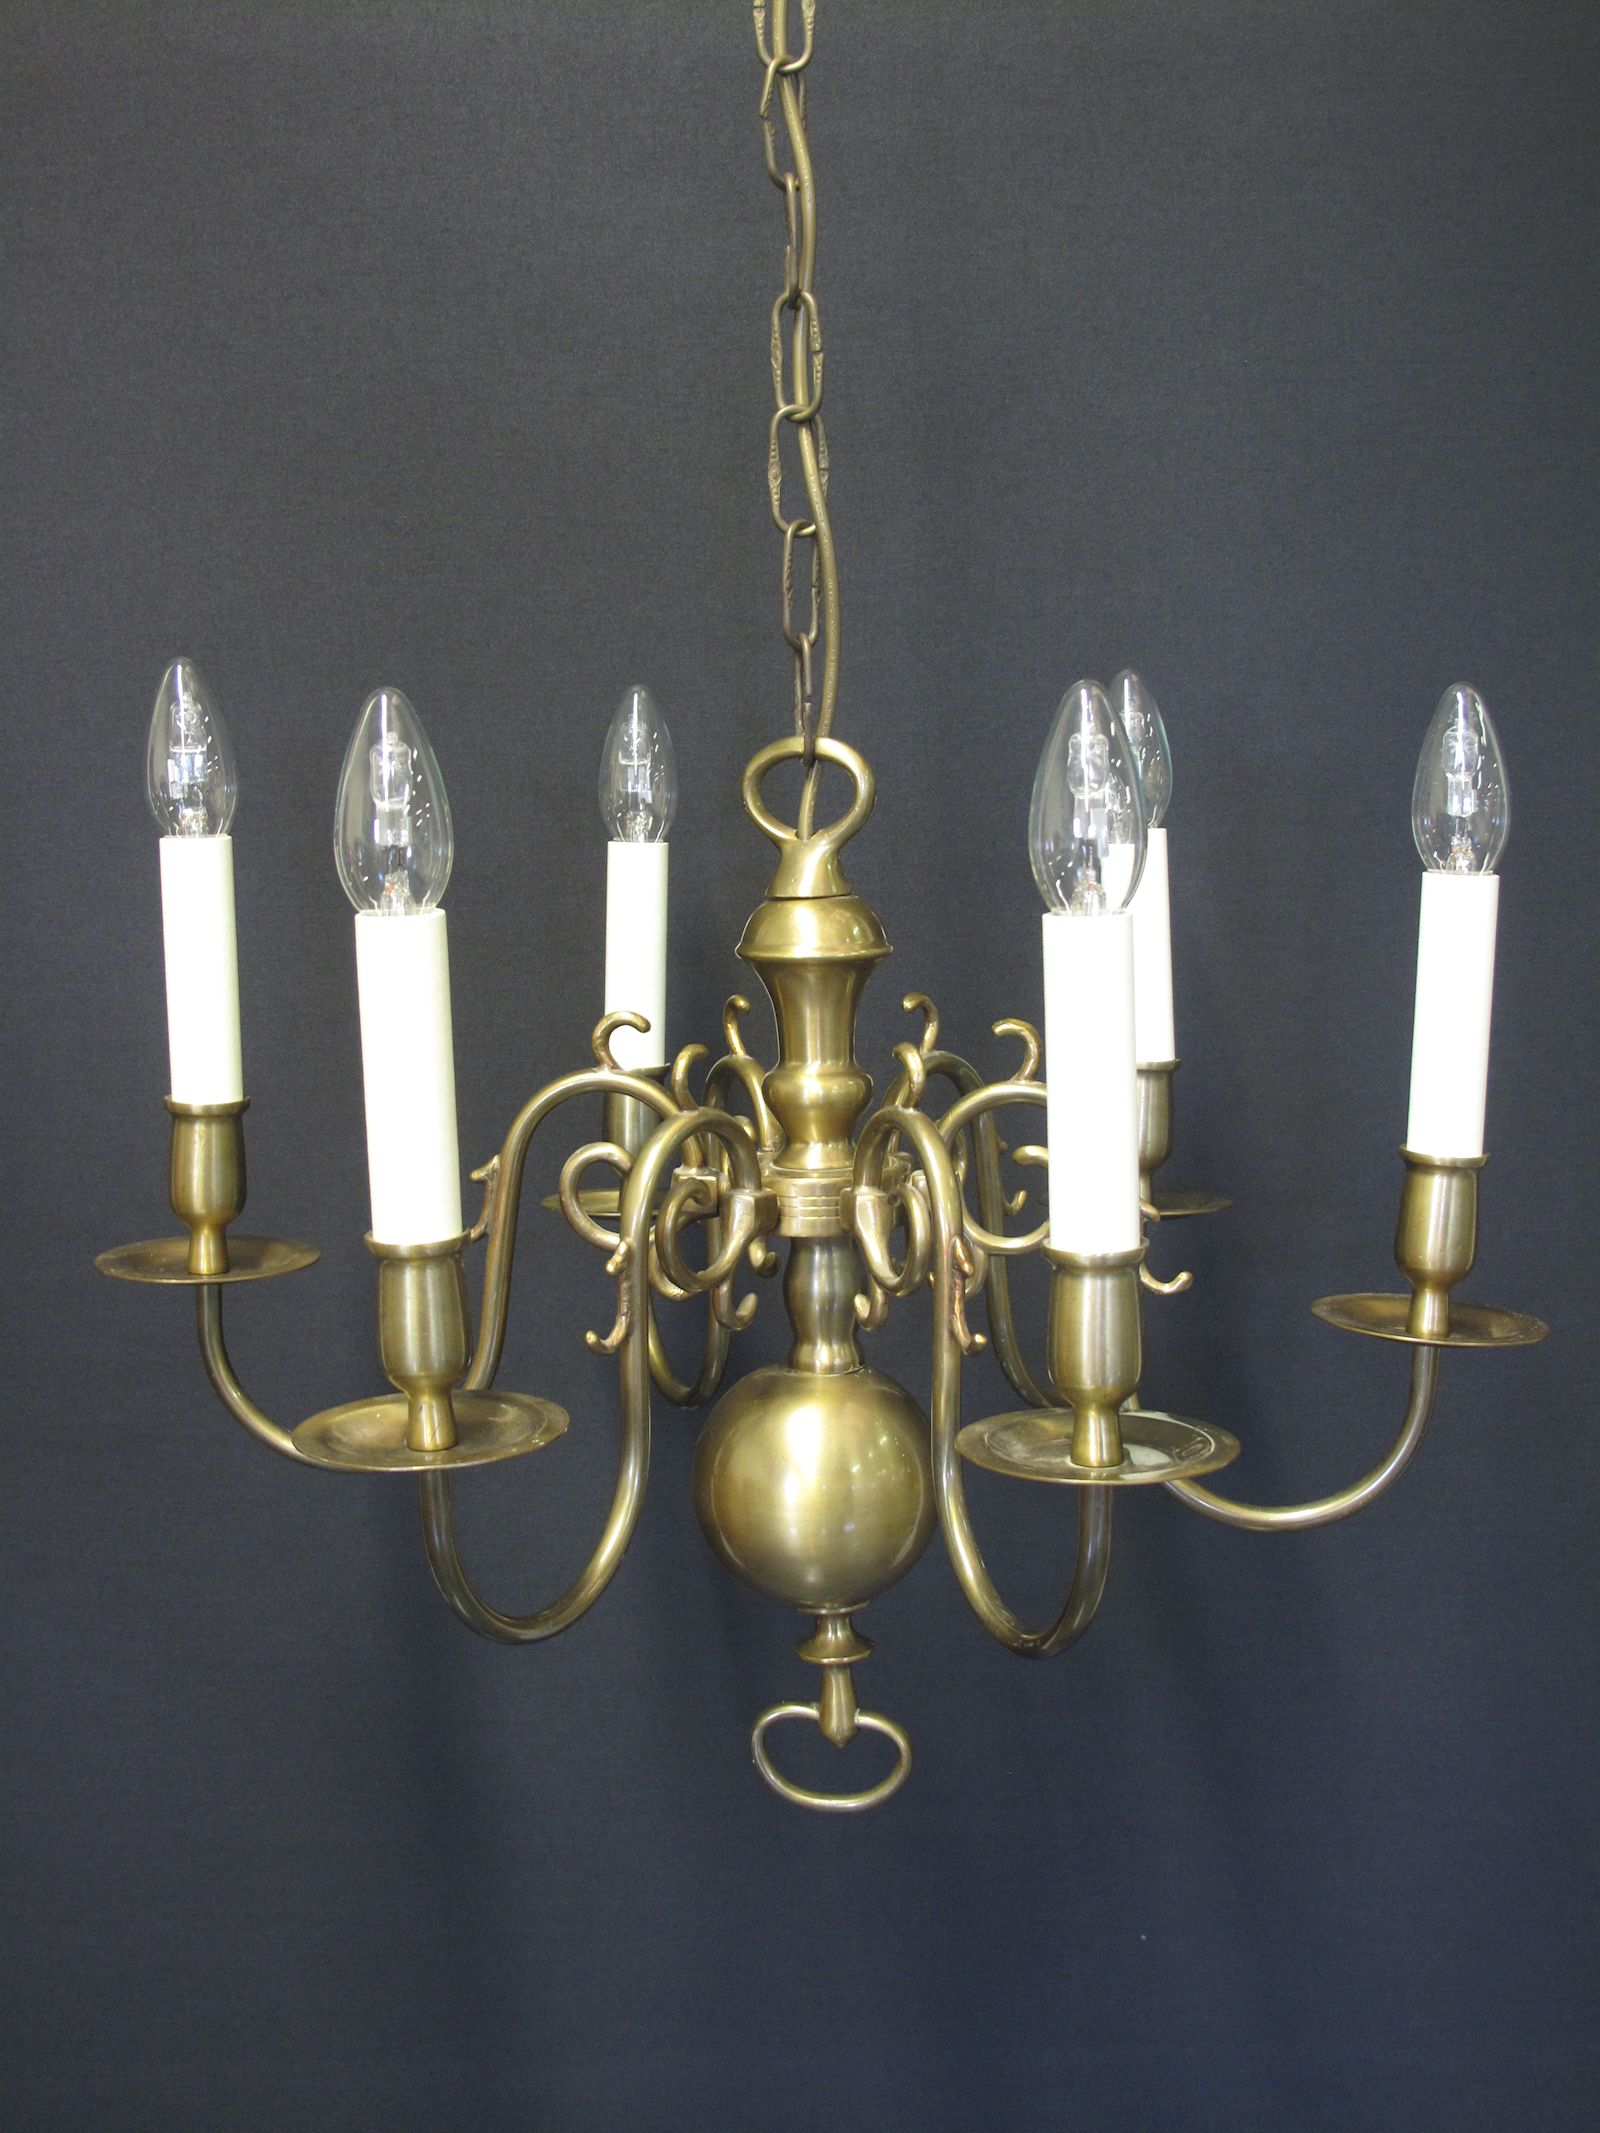 G p cohn antique chandeliers repairs restoration zoom arubaitofo Gallery